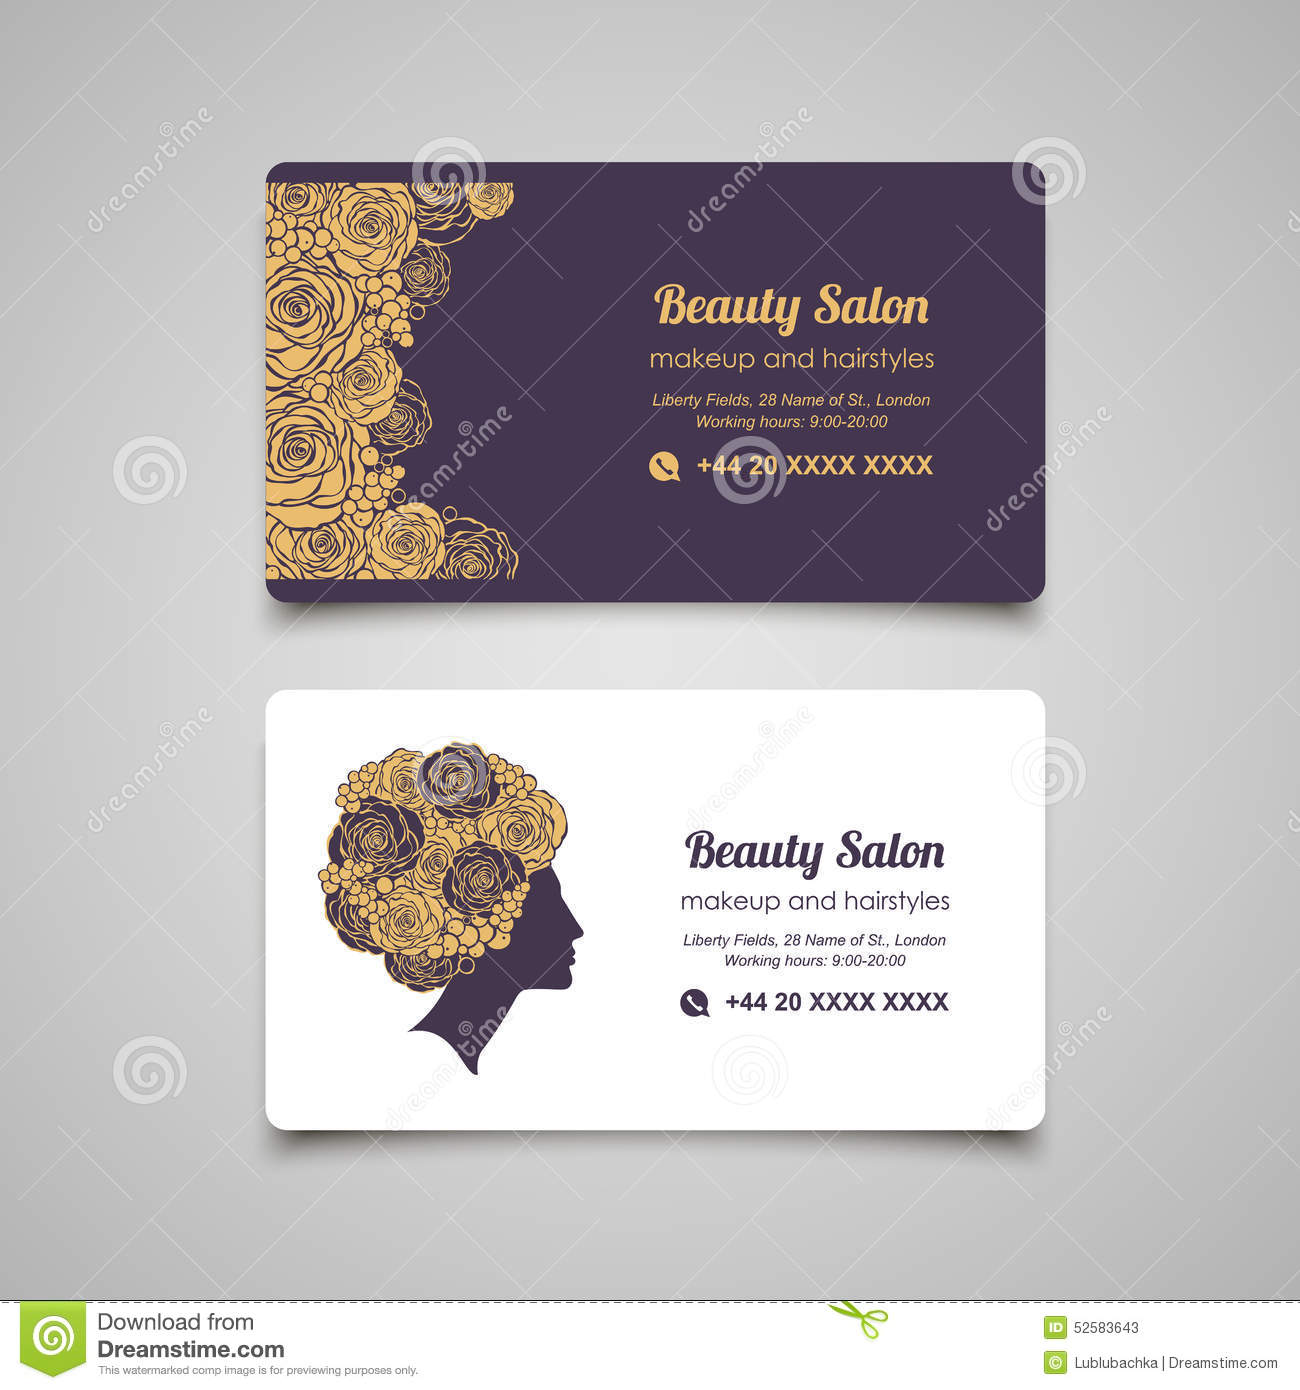 Beauty salon luxury business card design template with - Beauty salon business ...